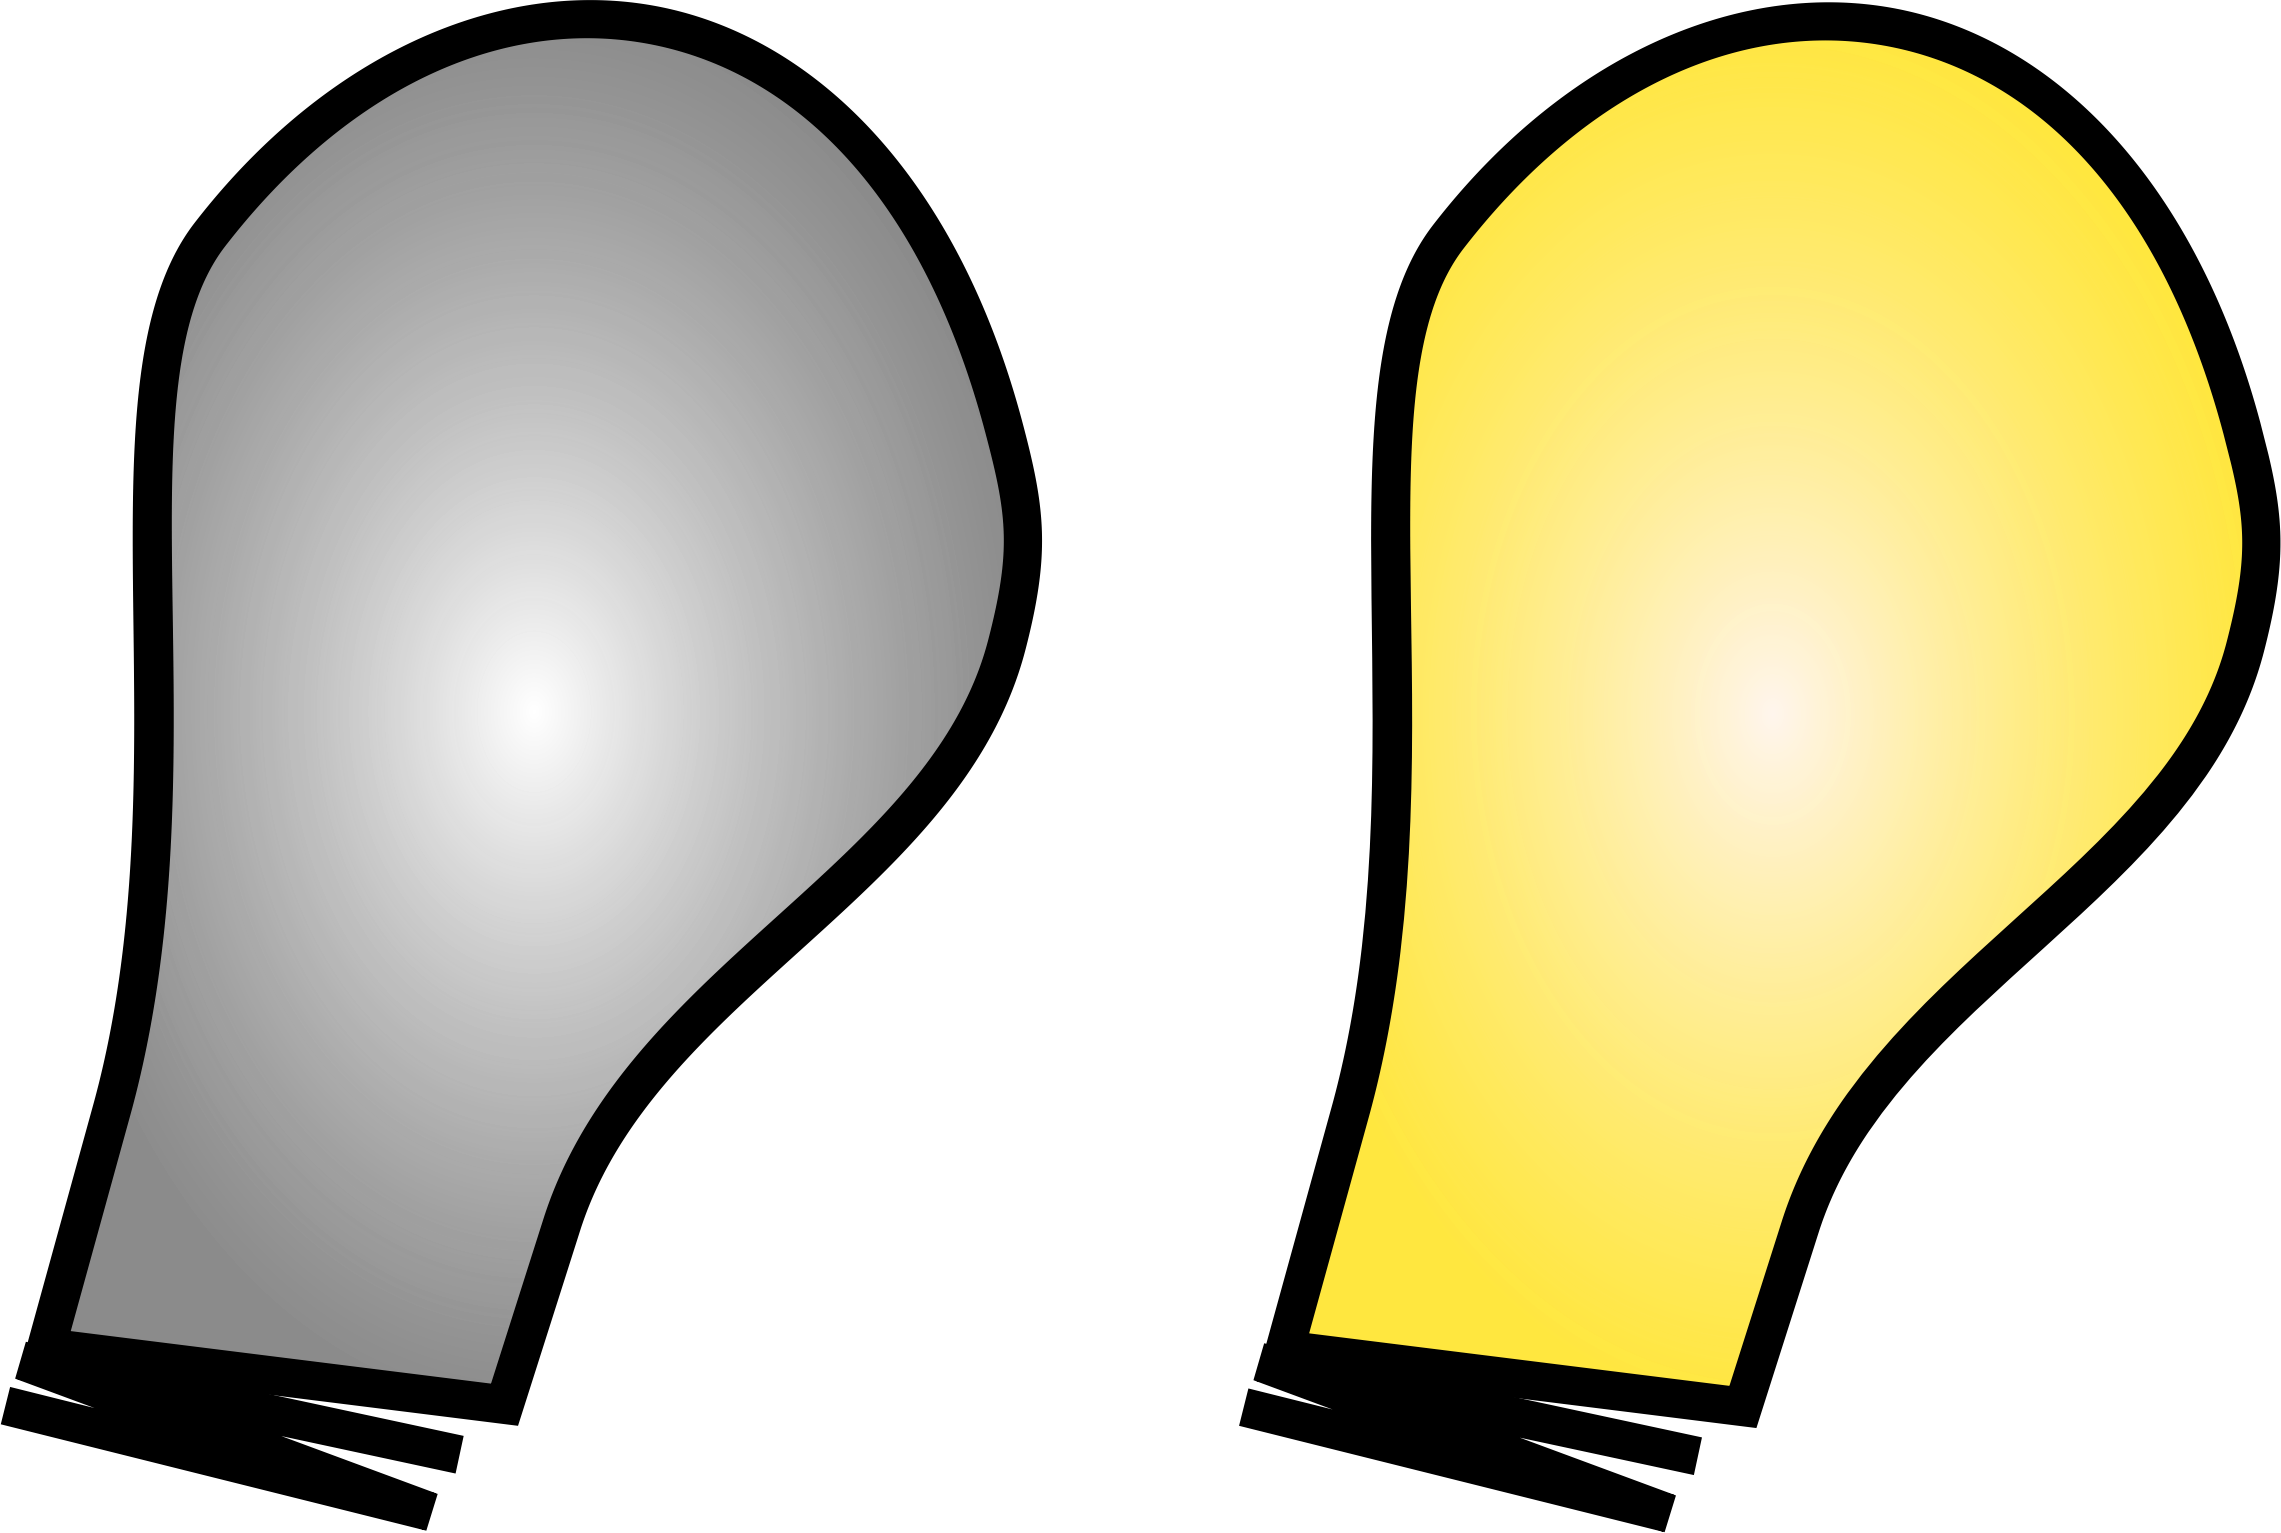 Simple light bulb on. Lights clipart yellow